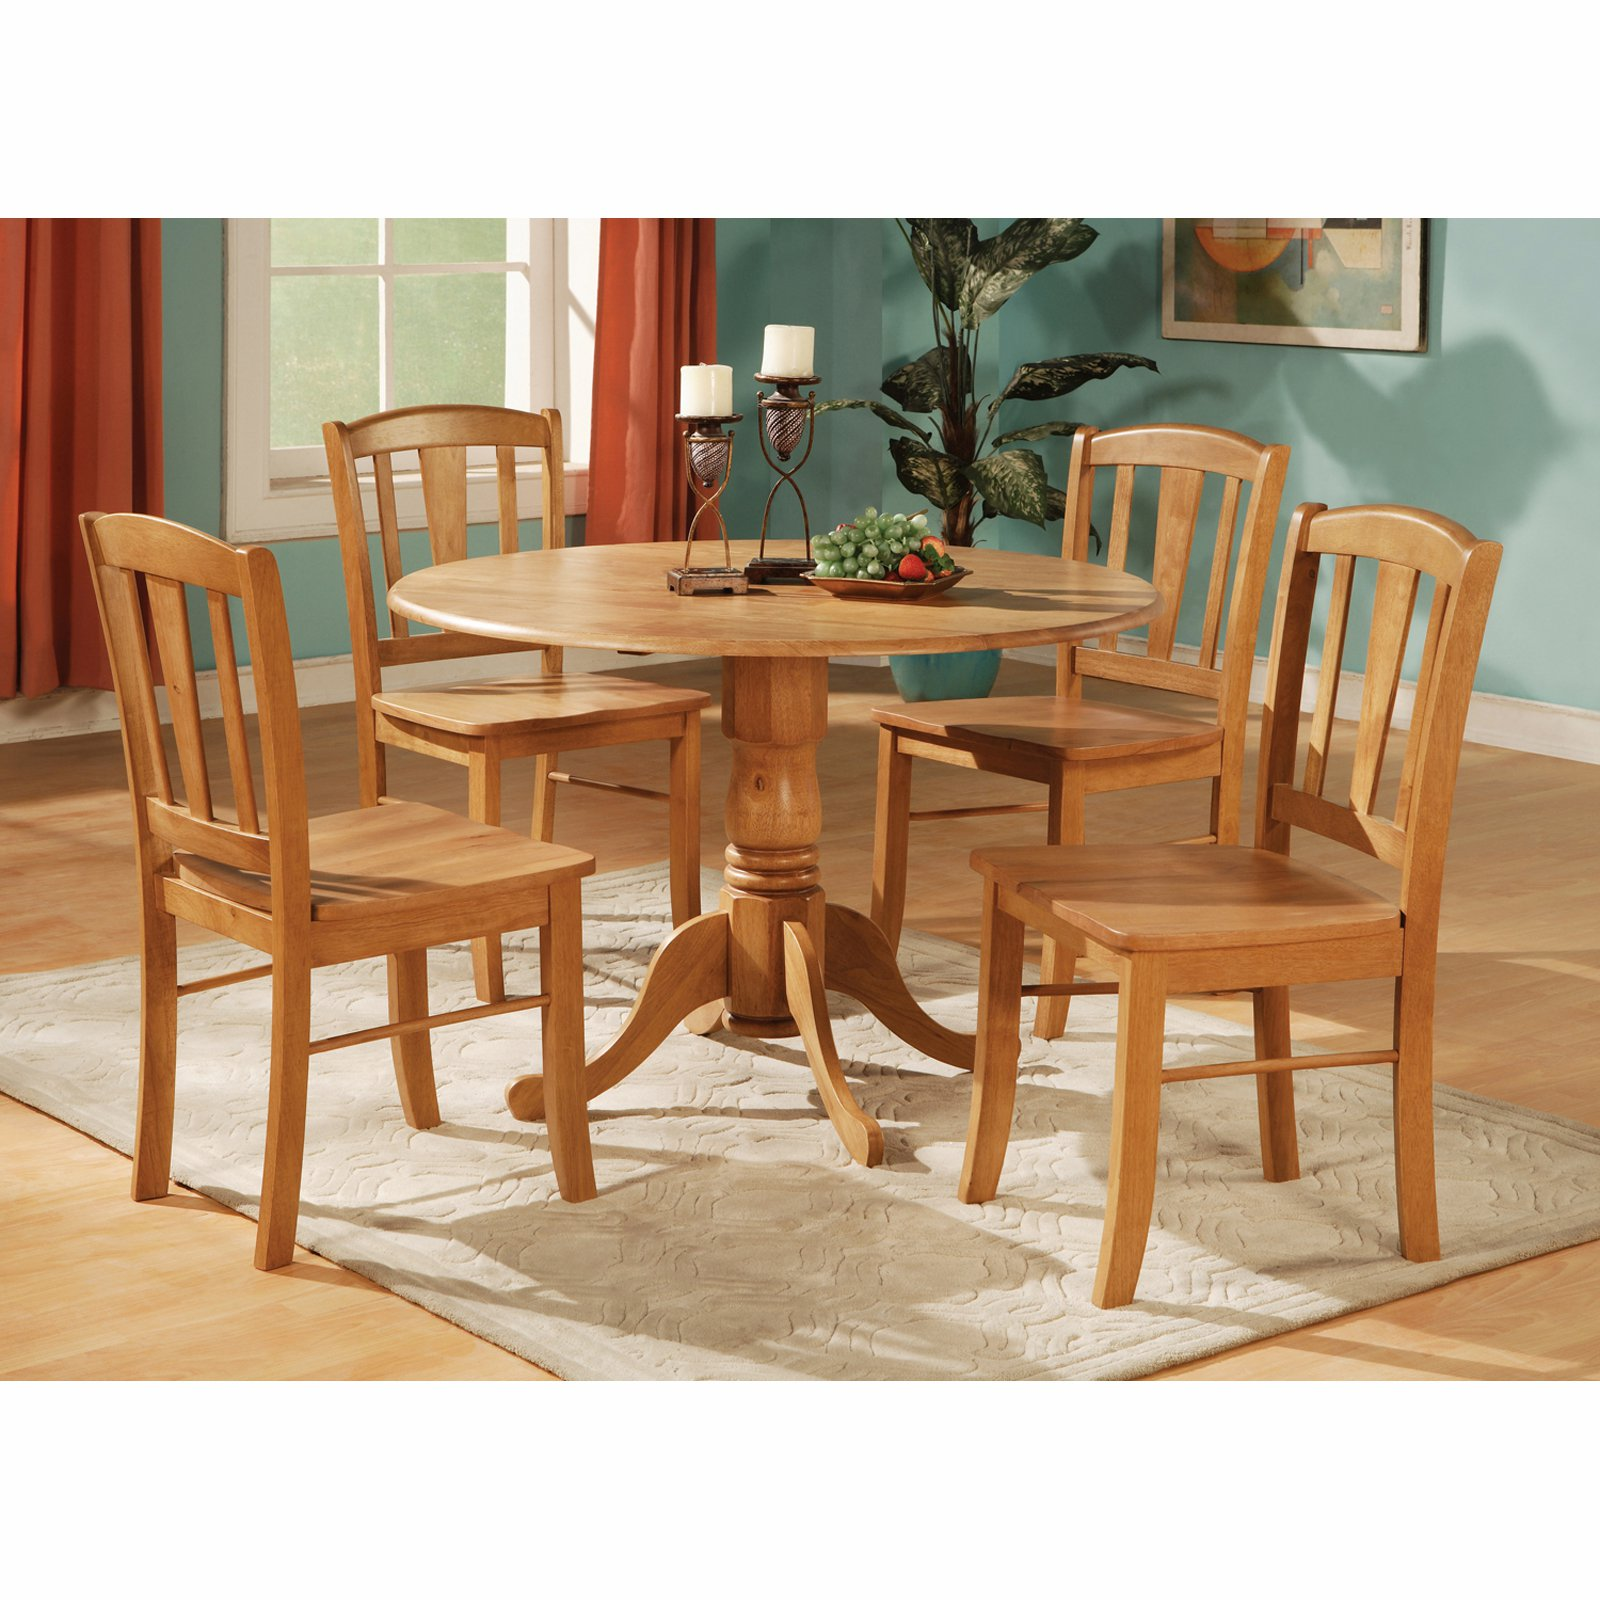 East West Furniture Dublin 5 Piece Drop Leaf Dining Table Set